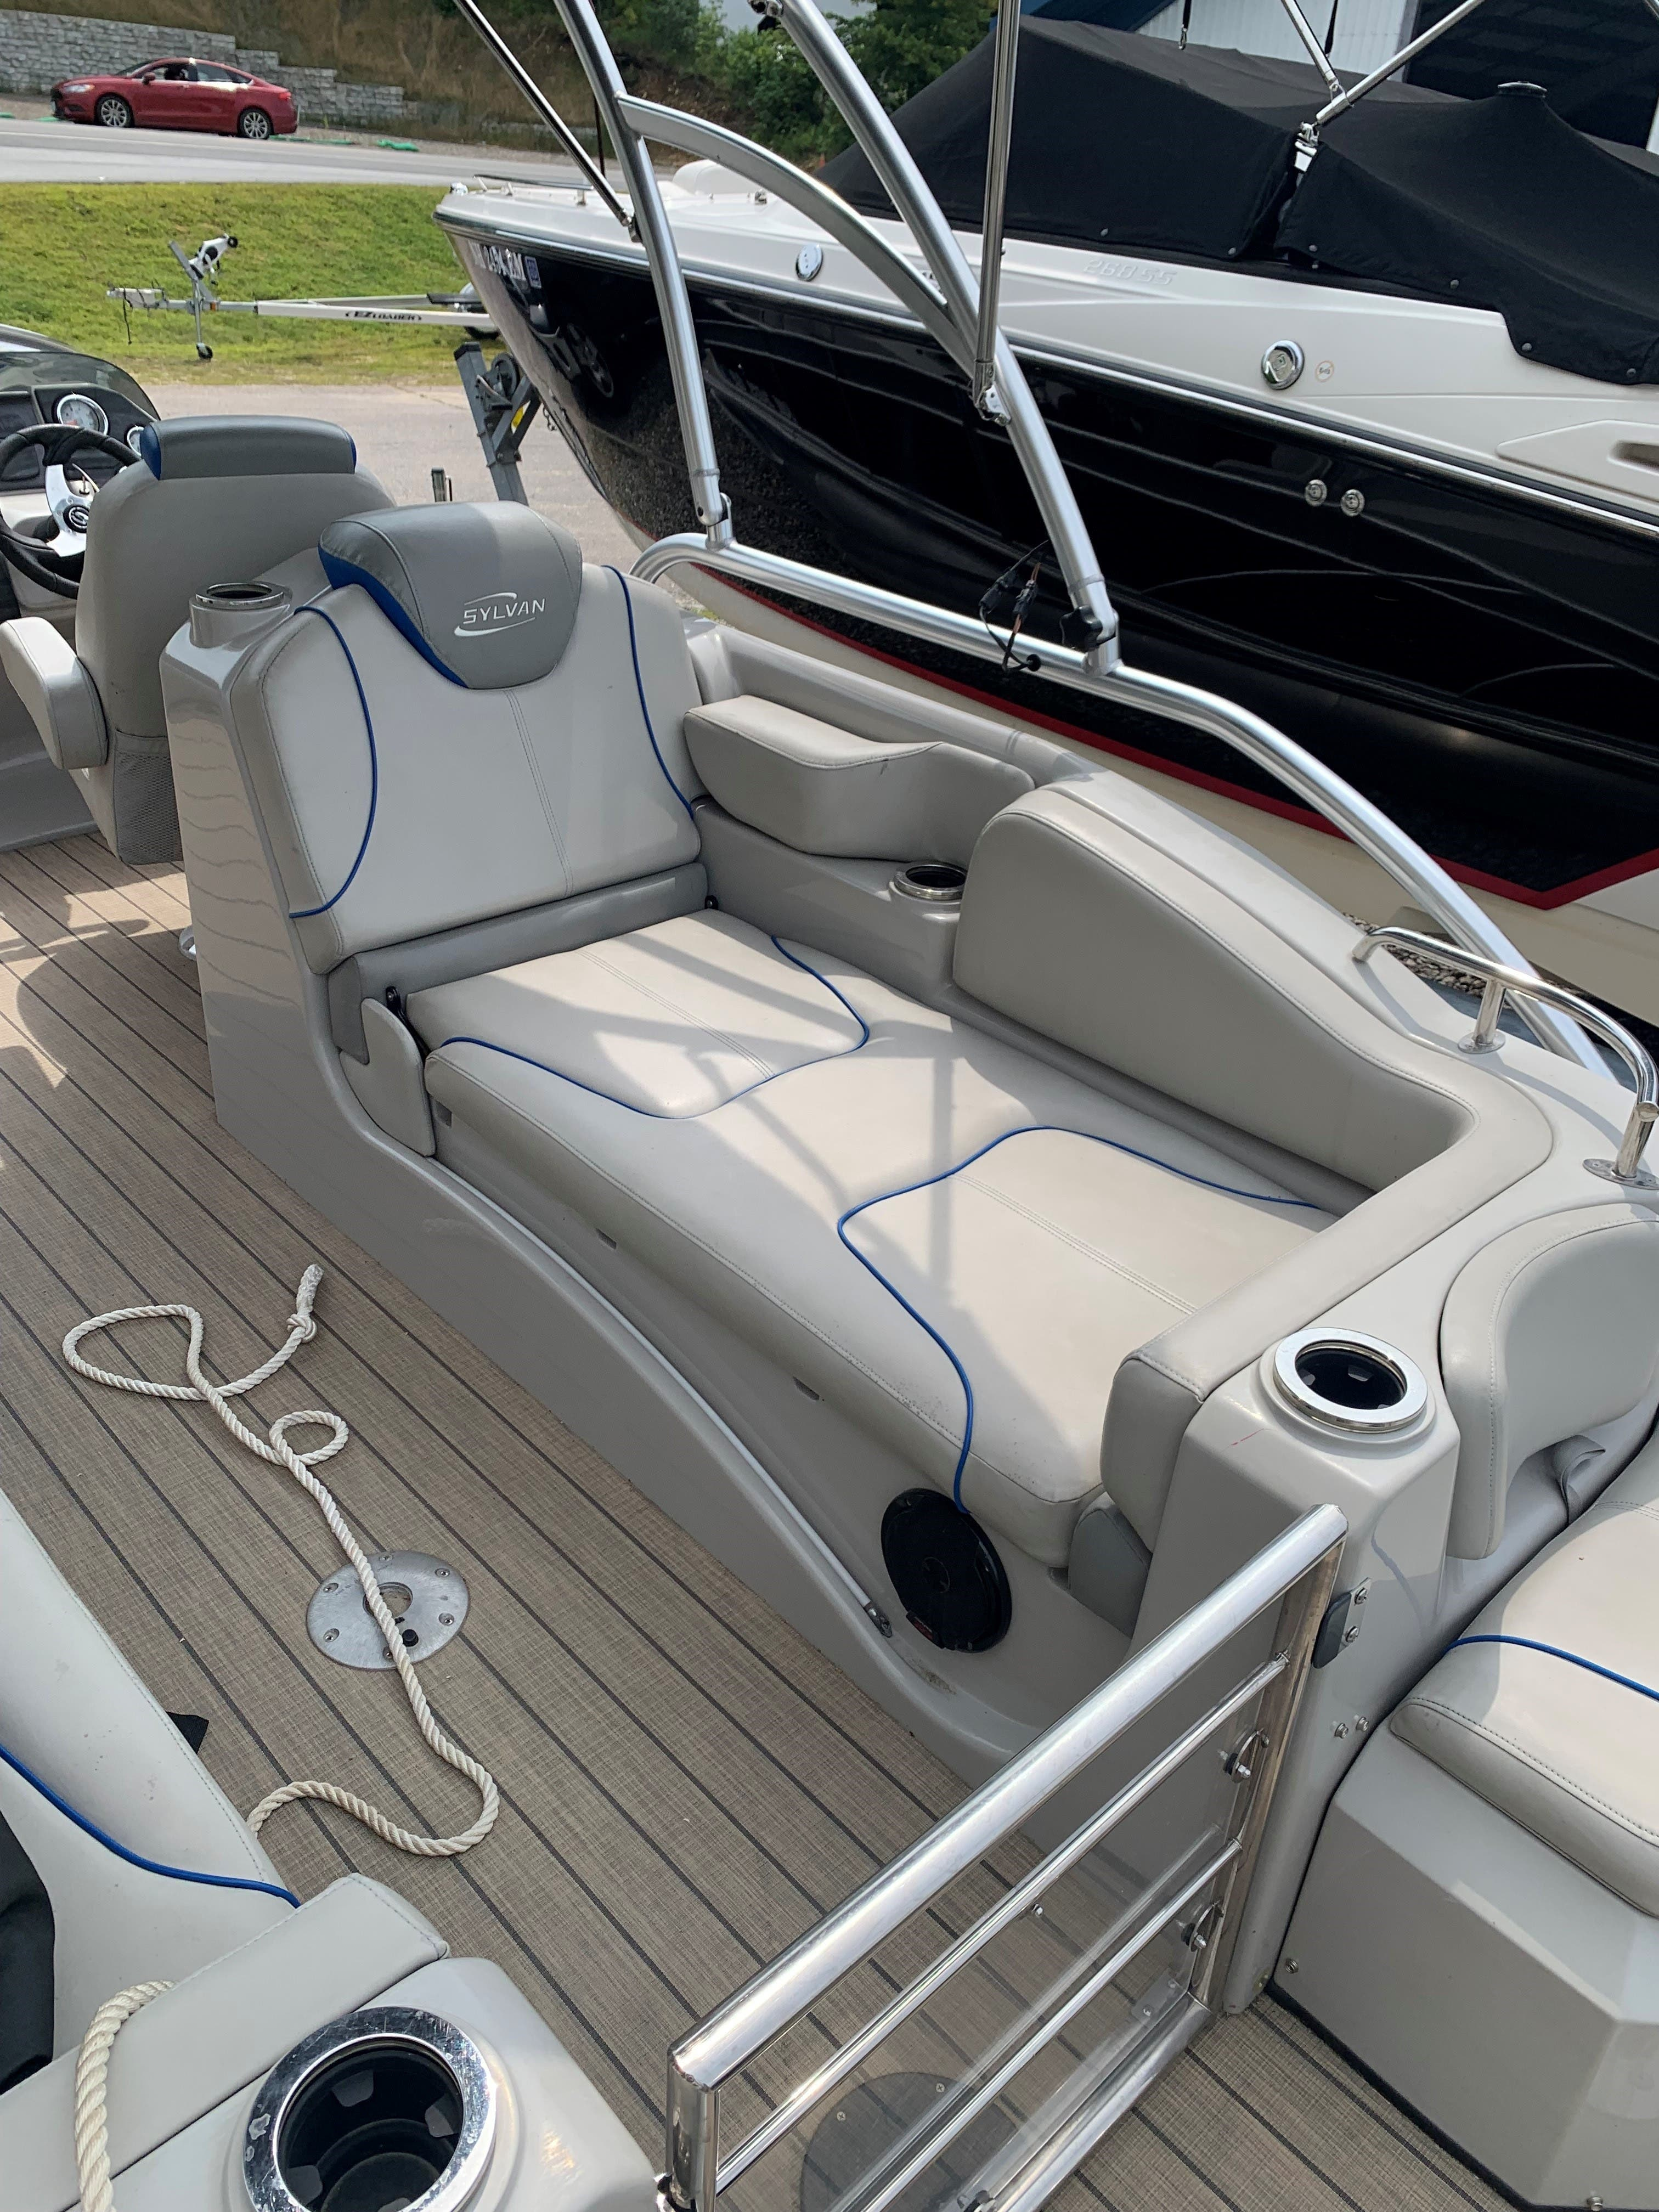 2015 Sylvan boat for sale, model of the boat is S3 & Image # 8 of 8